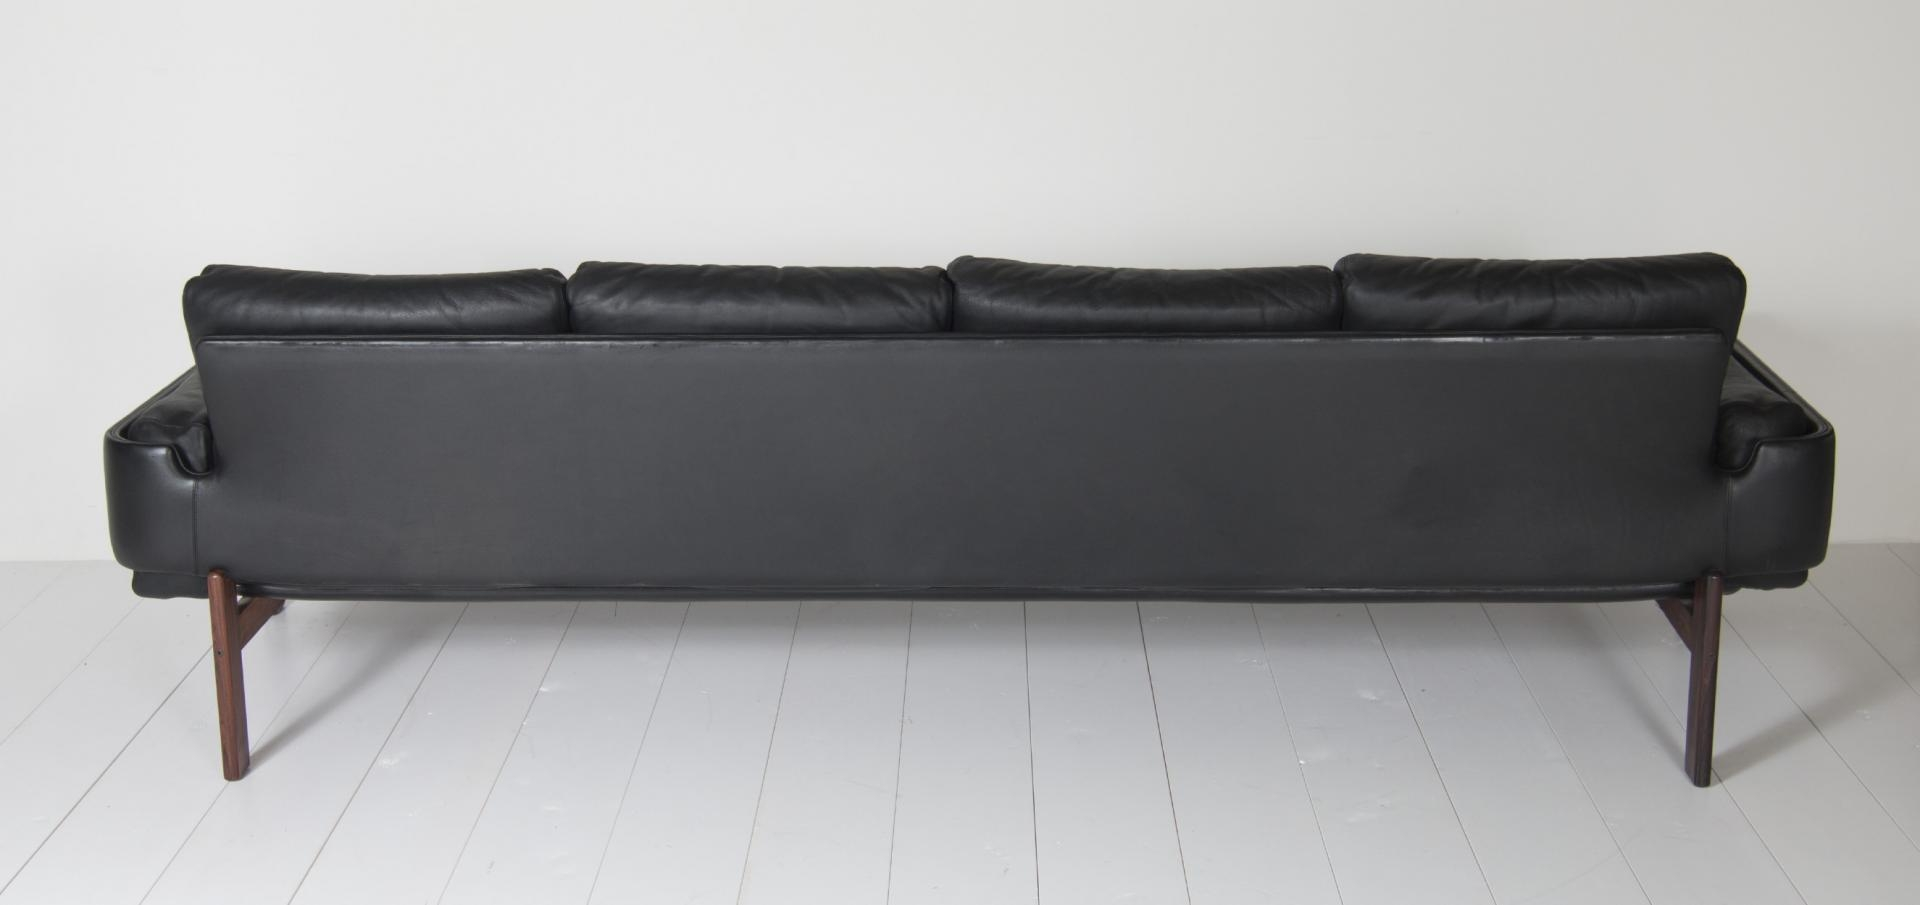 Four Seater Black Leather Sofasven Ivar Dysthe For Dokka For For 4 Seat Leather Sofas (Image 3 of 20)